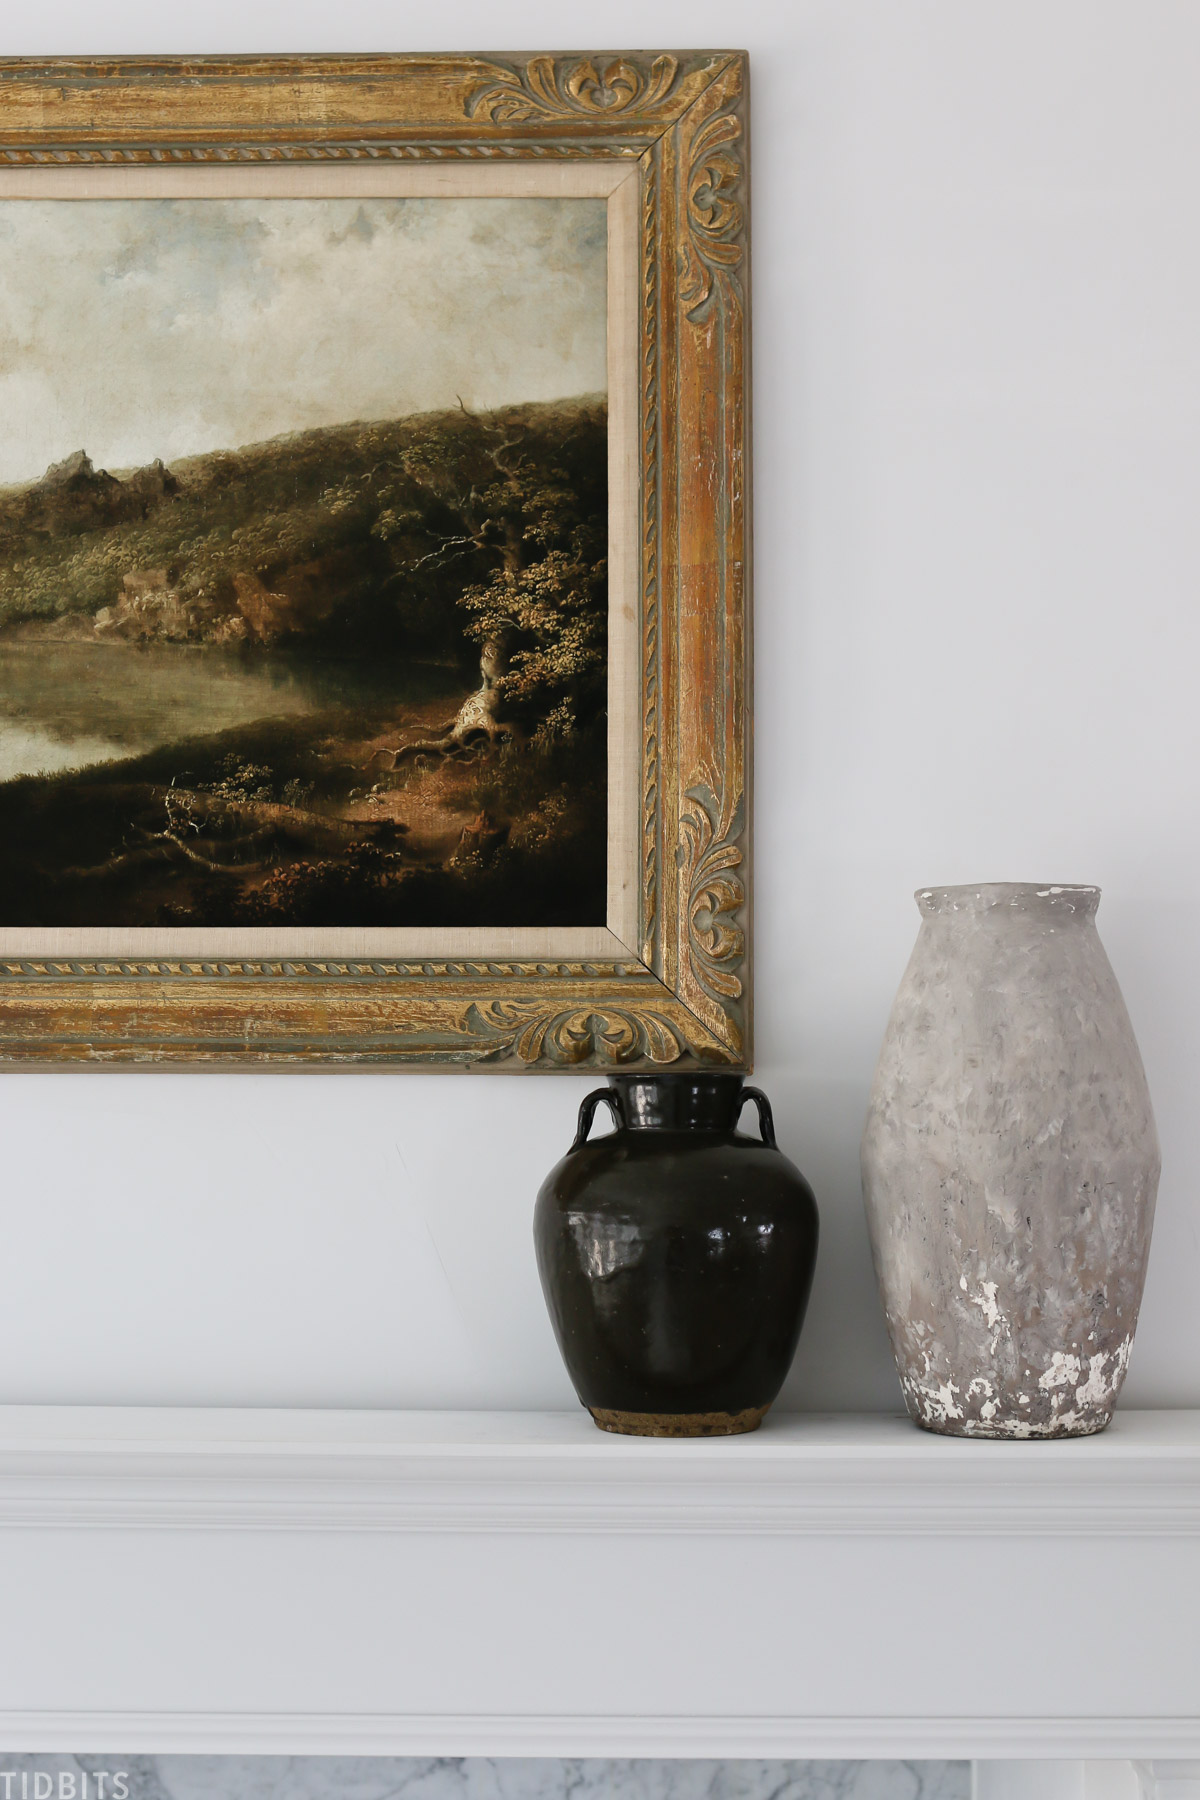 framed vintage wall art hanging above mantel with two antique vases on the mantel